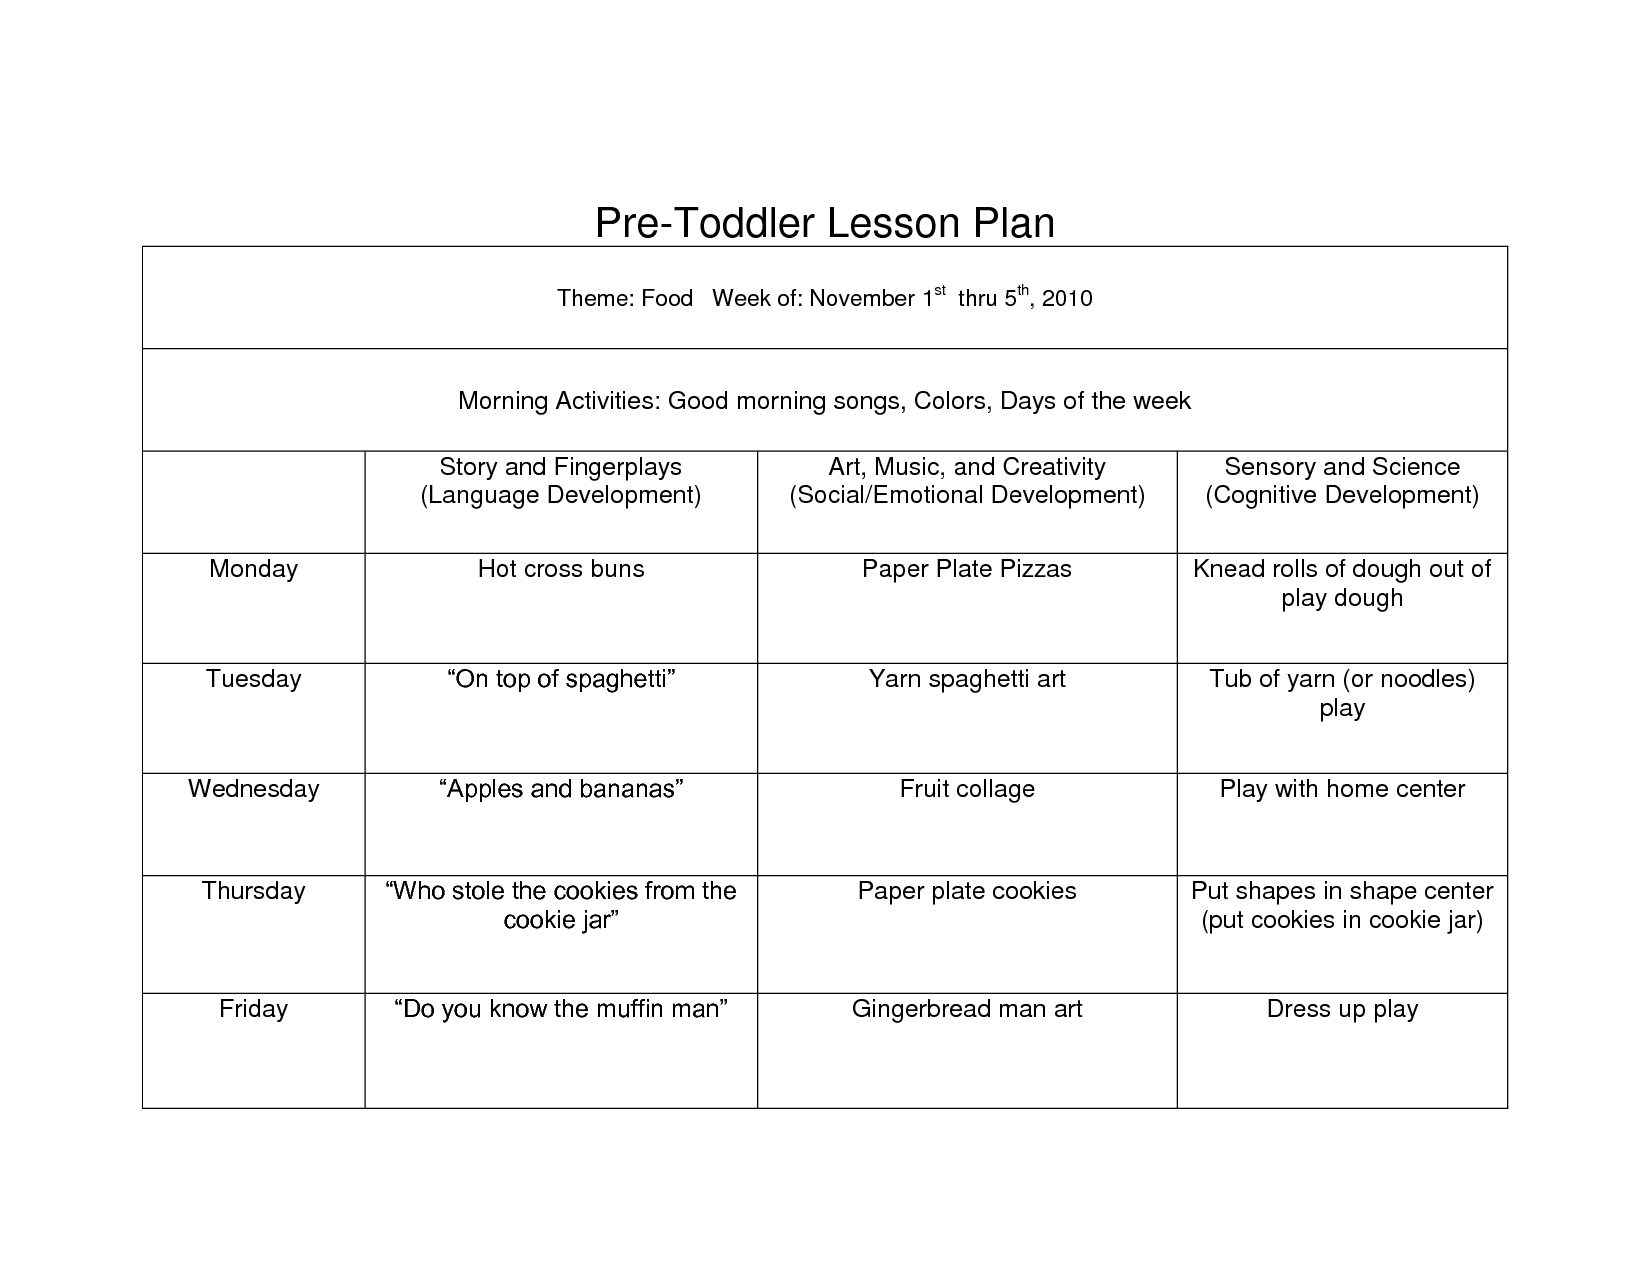 ohio department of education lesson plan template - creative curriculum blank lesson plan wcc pre toddler